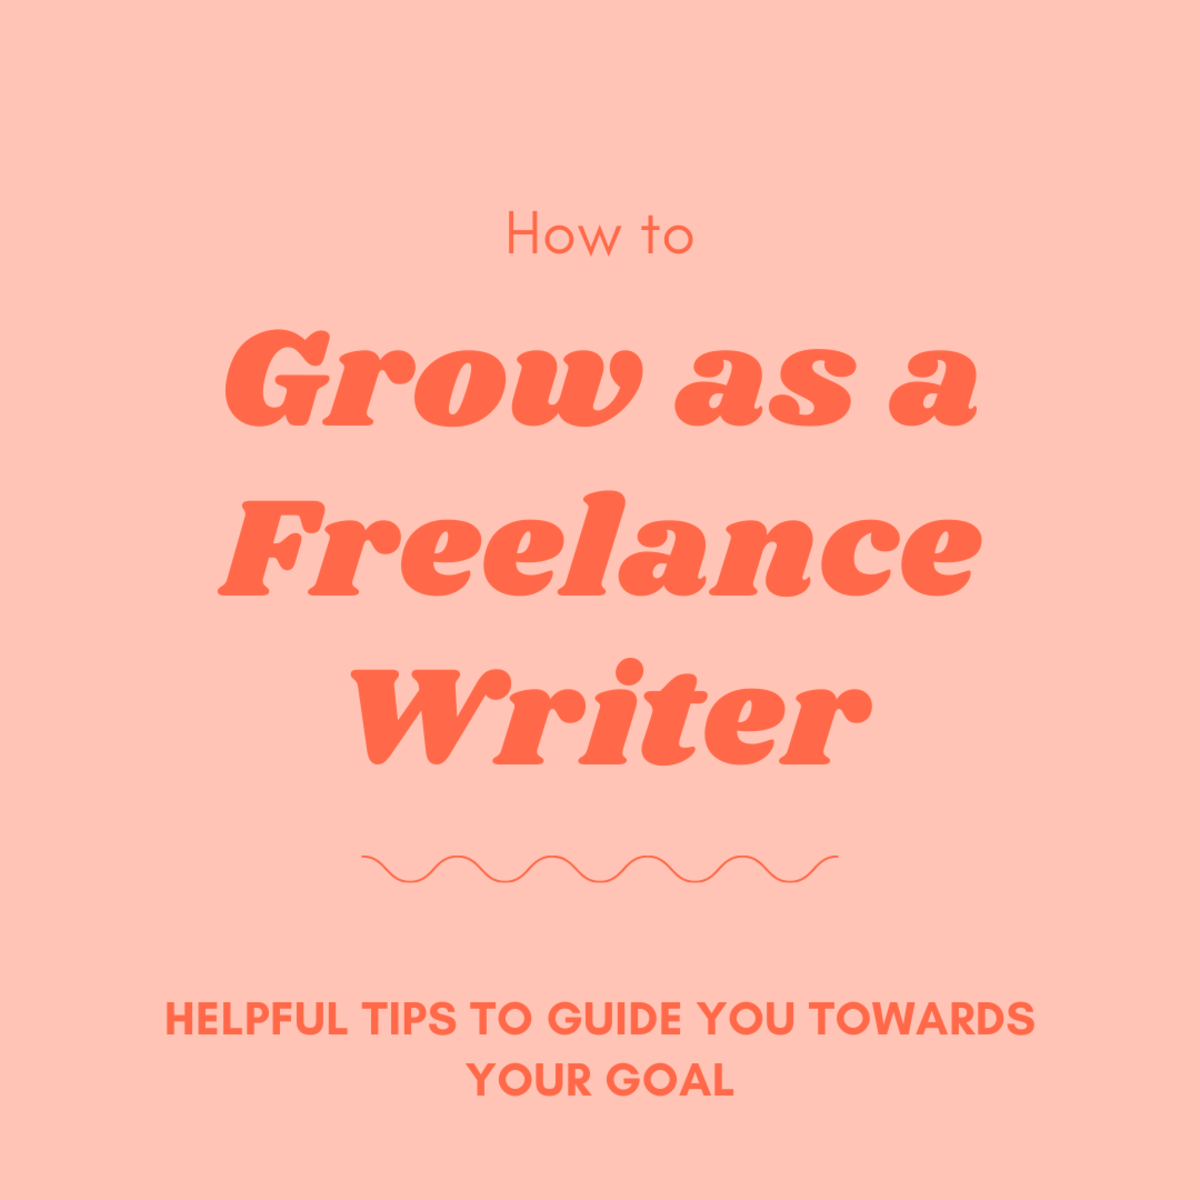 Learn how to grow as a freelance writer!